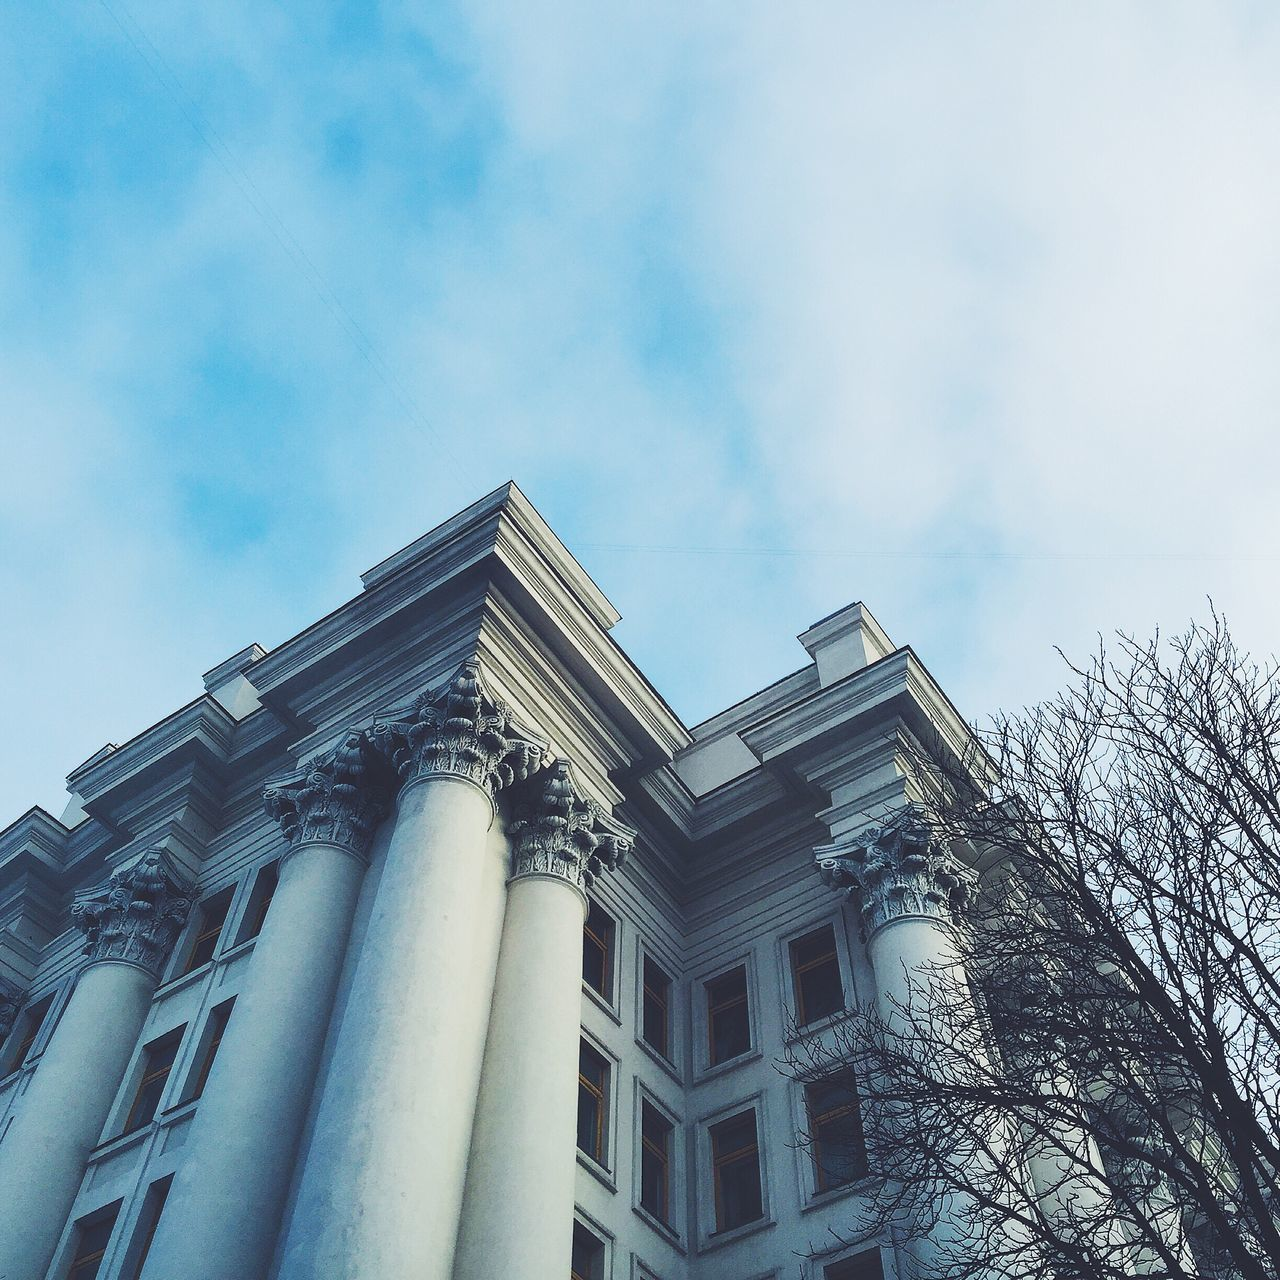 Beautiful stock photos of ukraine, architecture, building exterior, built structure, low angle view